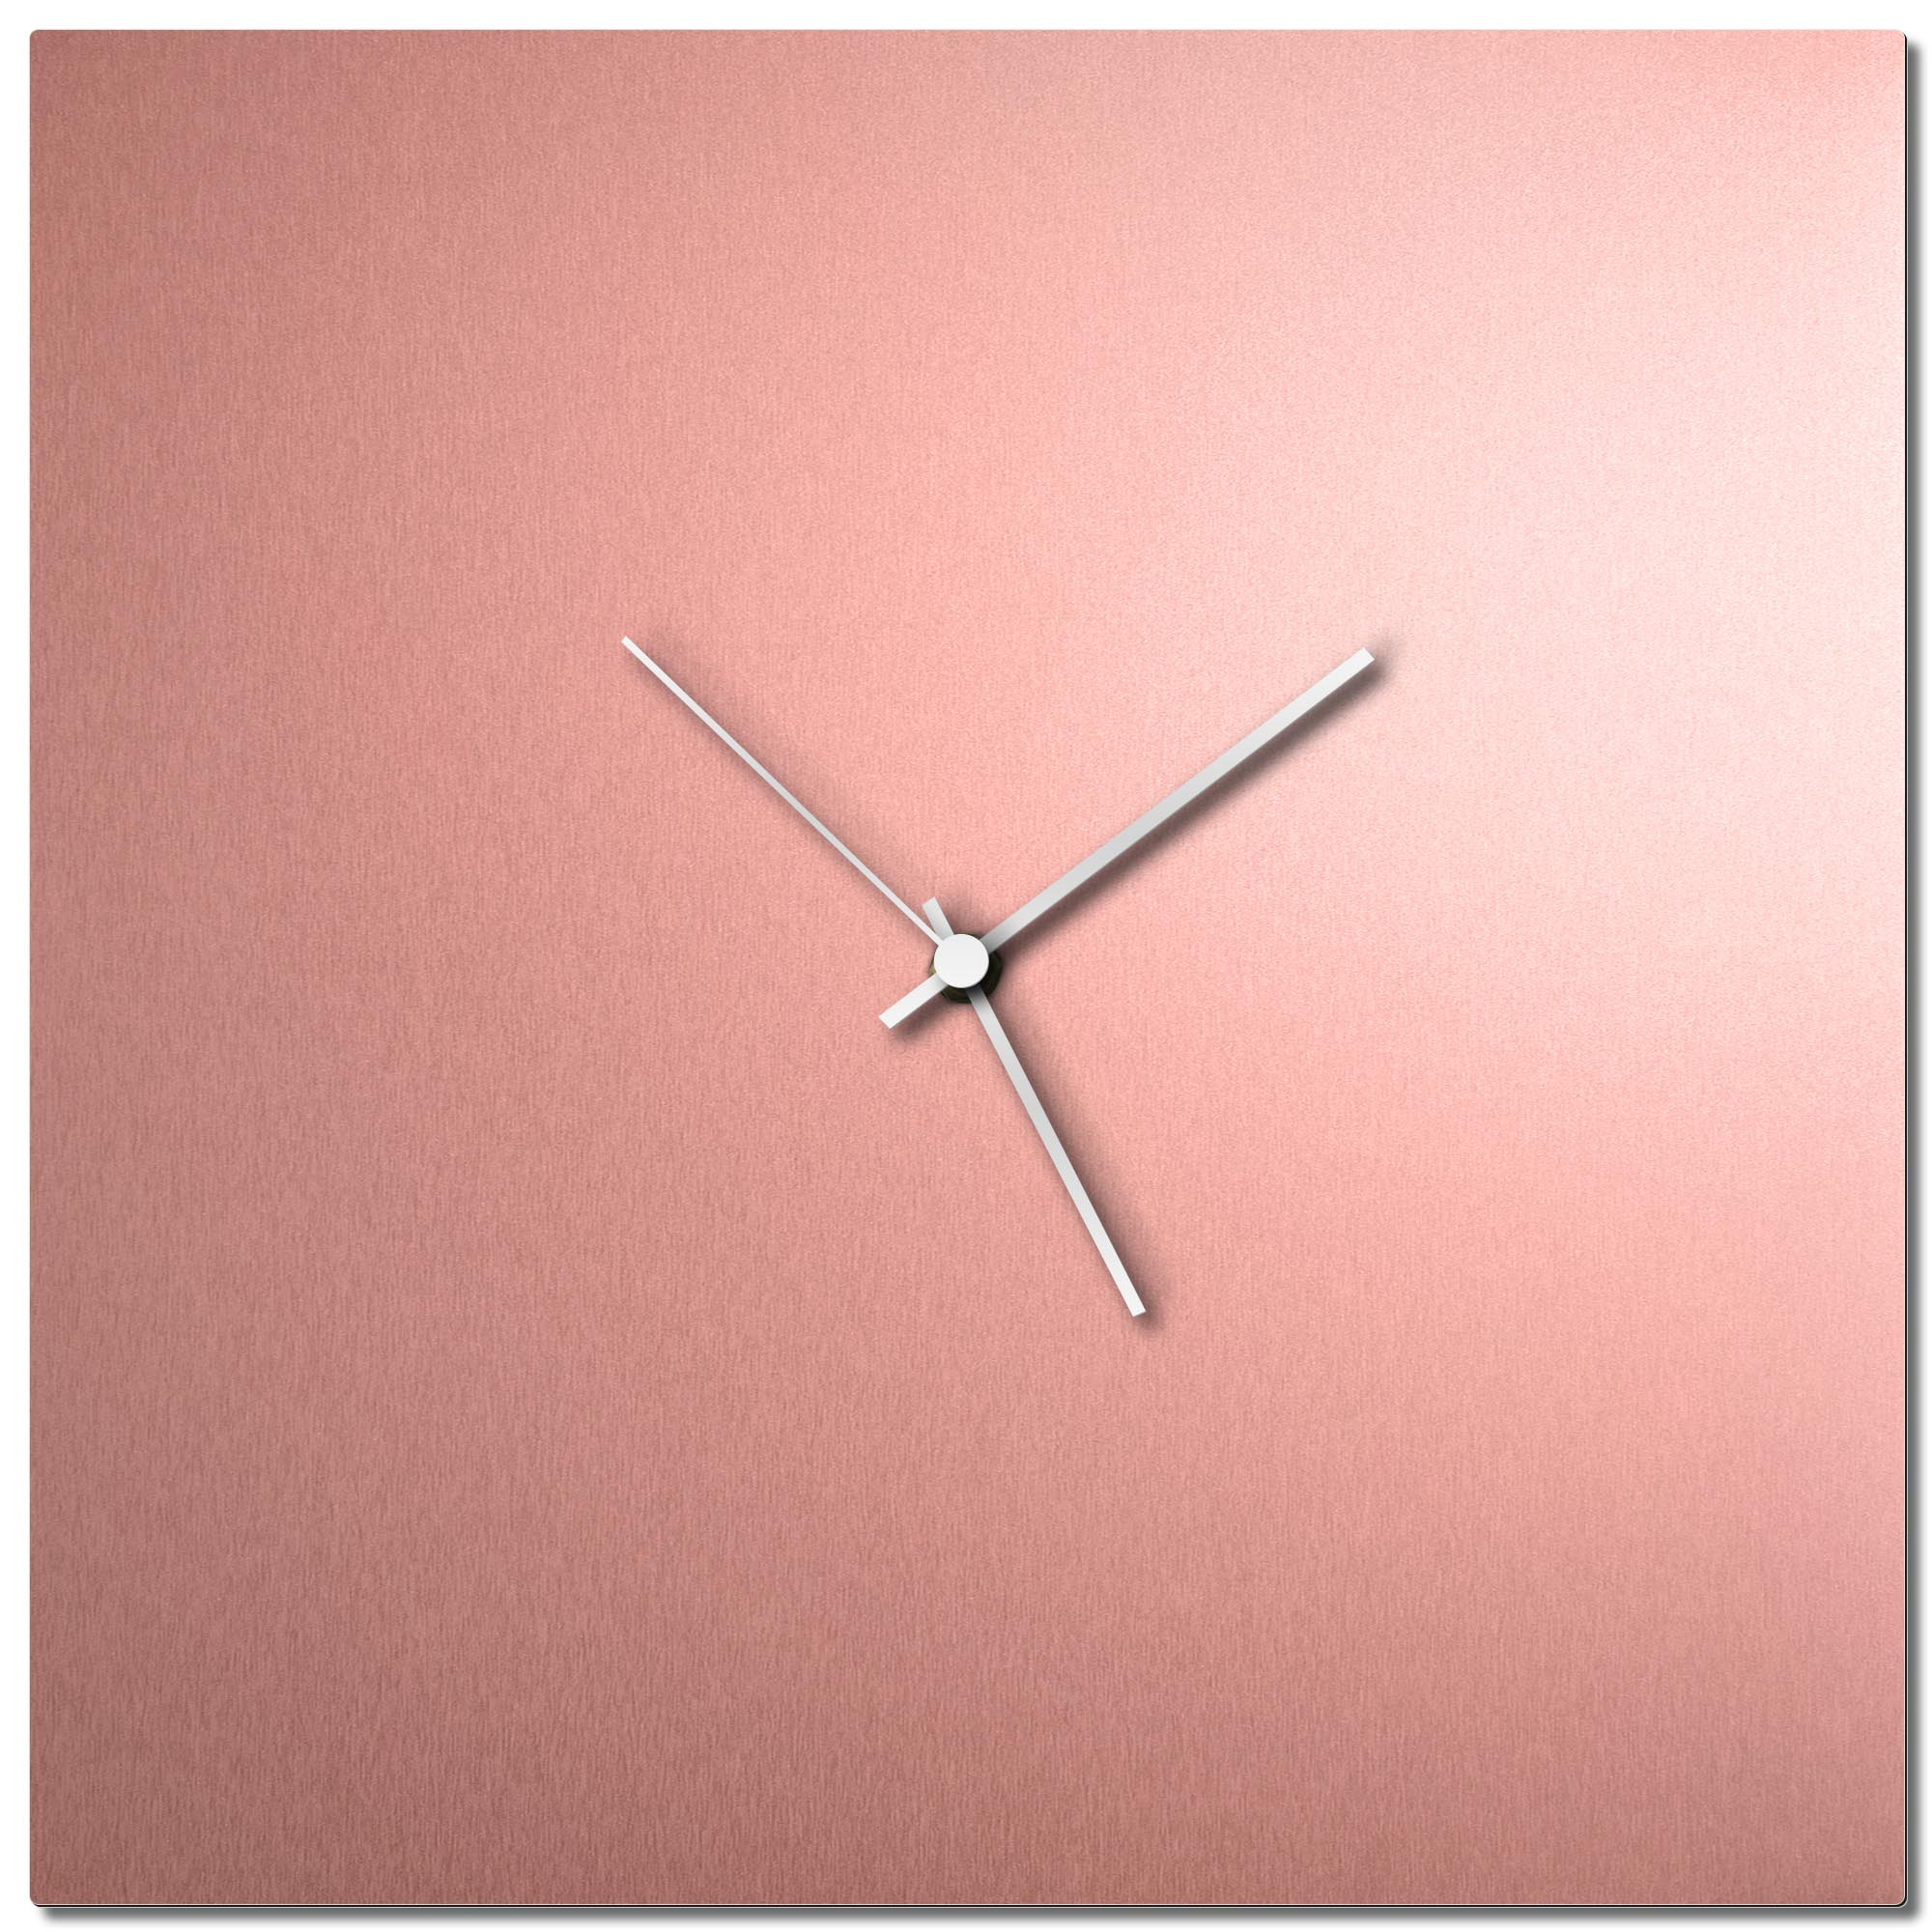 Adam Schwoeppe 'Coppersmith Square Clock Large White' Midcentury Modern Style Wall Clock